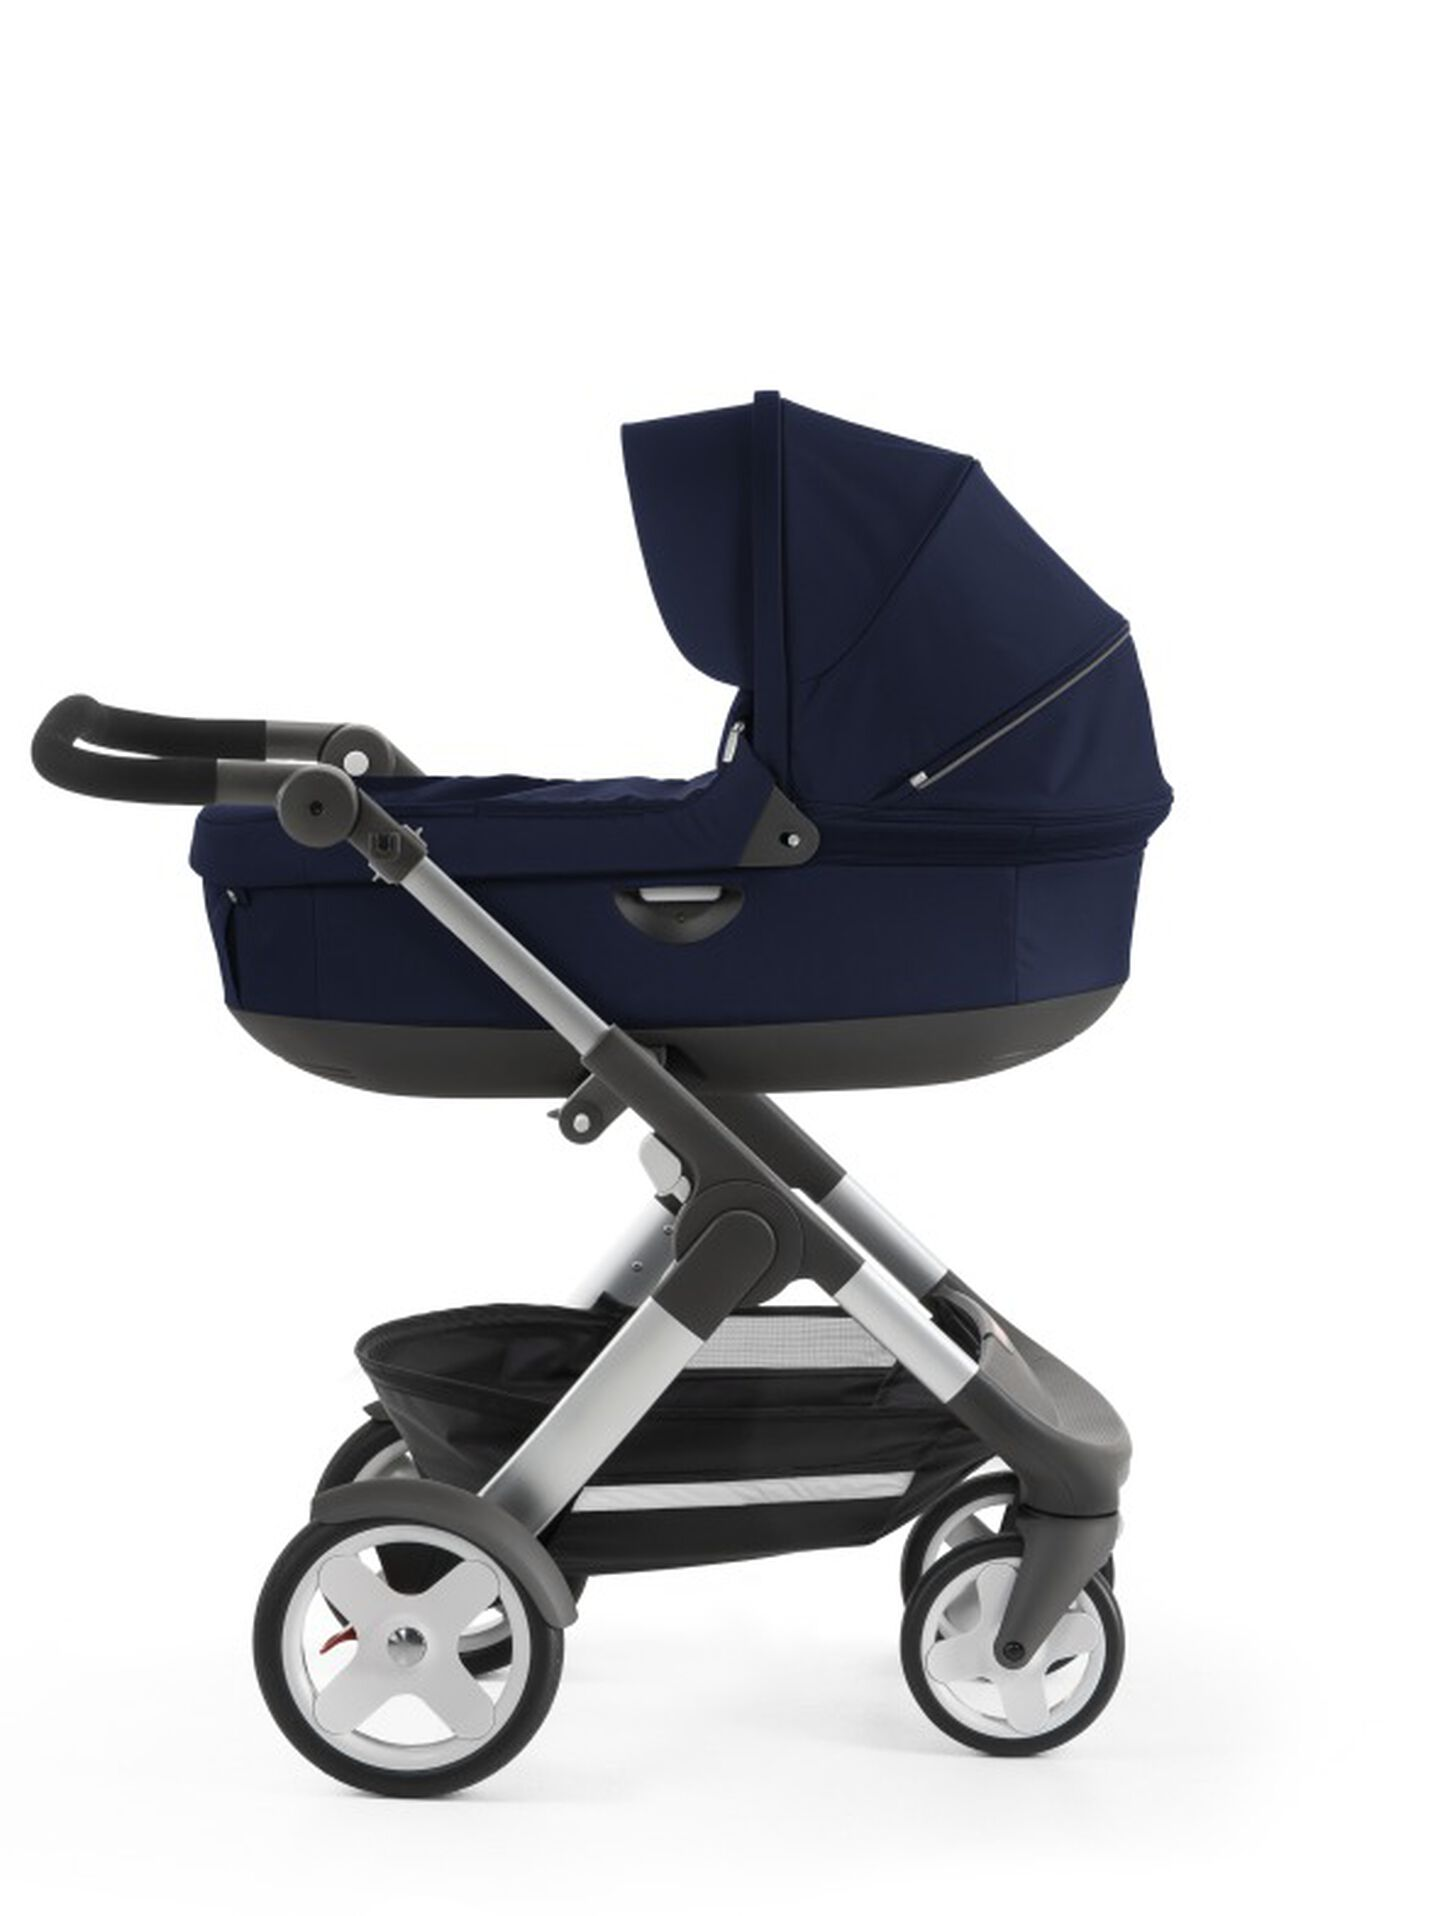 Stokke® Trailz™ with Stokke® Stroller Carry Cot, Deep Blue. Classic Wheels. view 2